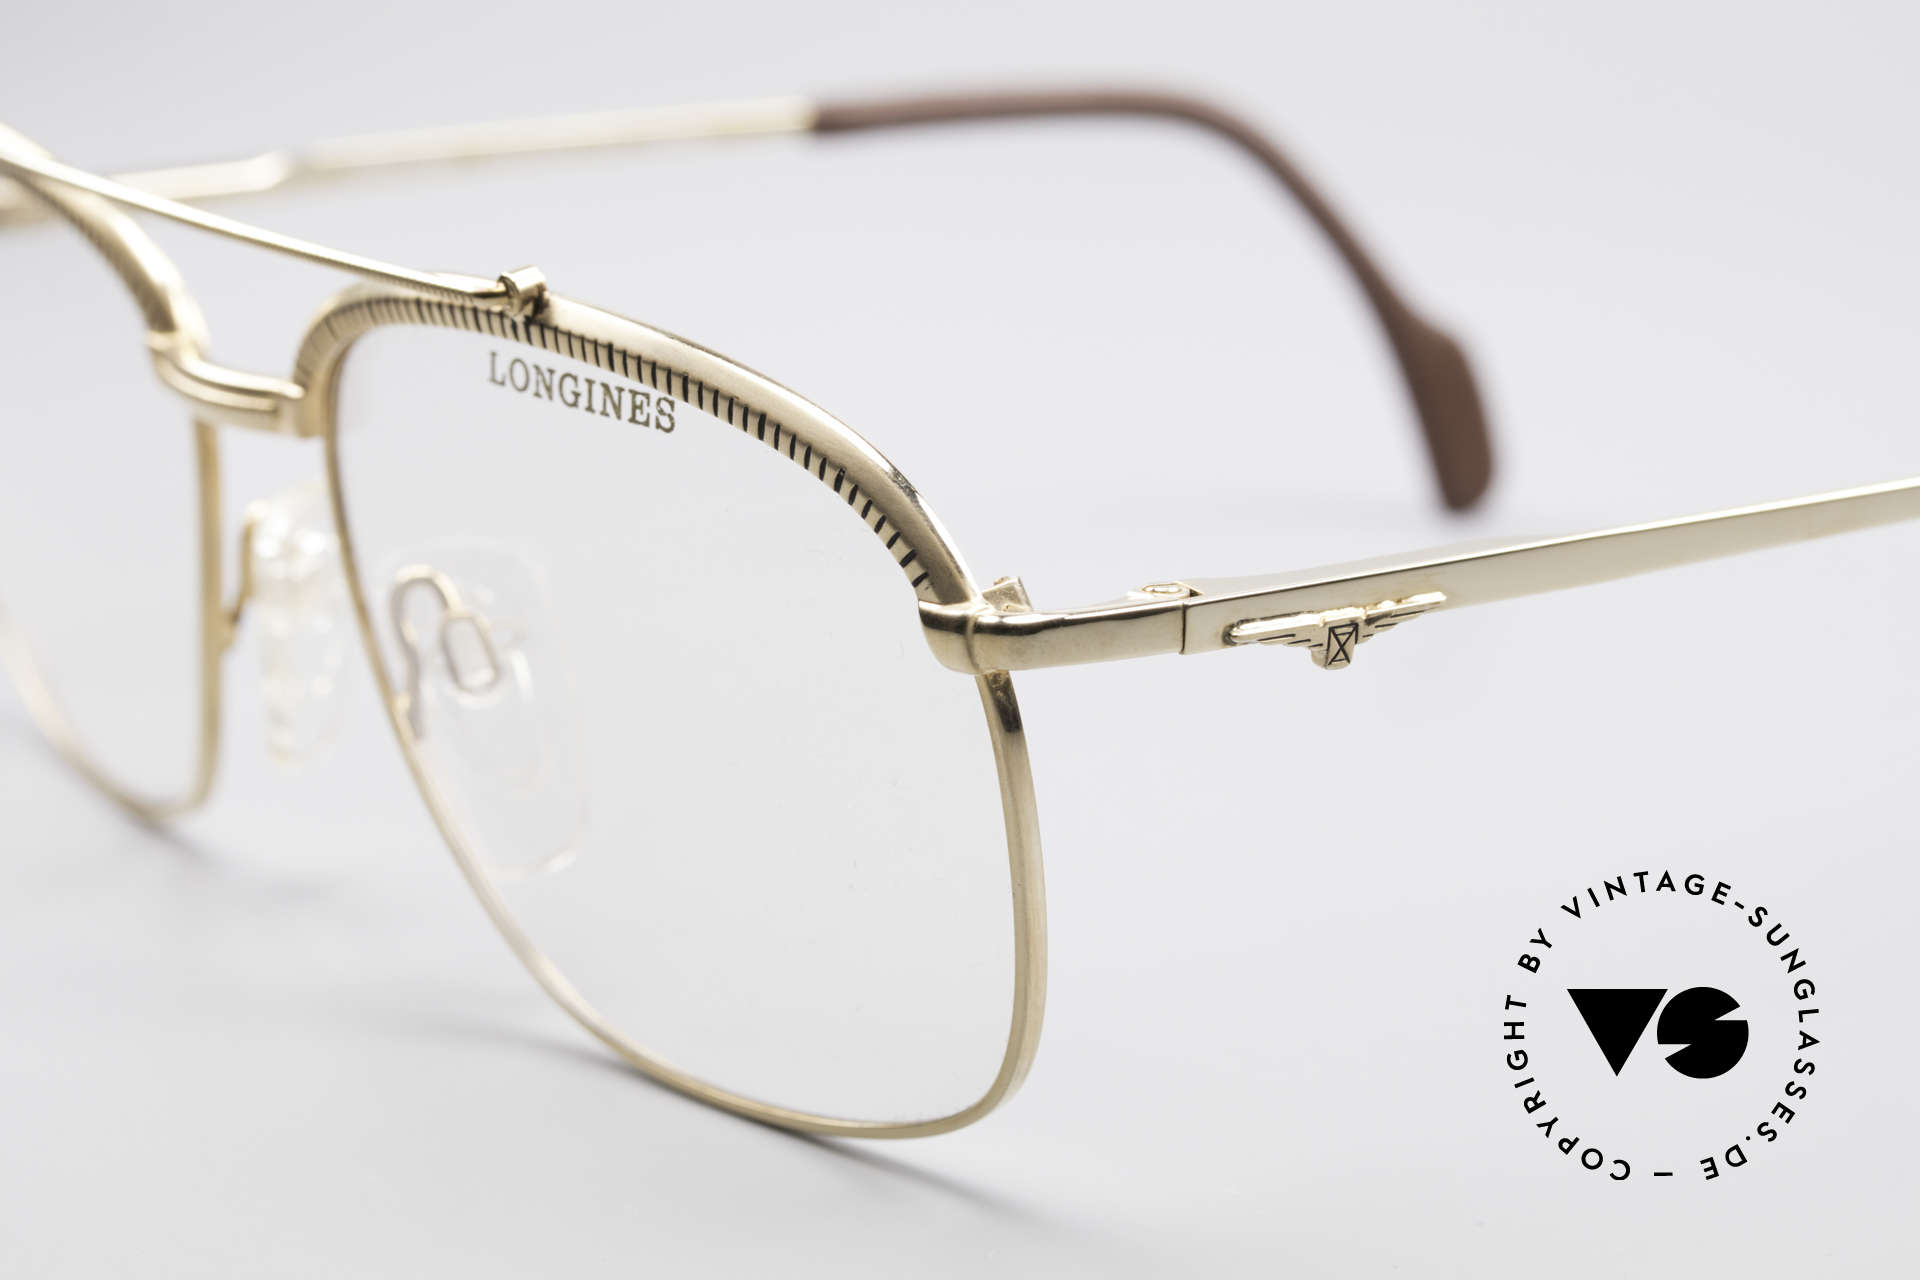 Longines 0172 80's Luxury Eyeglasses, NO RETRO fashion, but an app. 30 years old ORIGINAL!, Made for Men